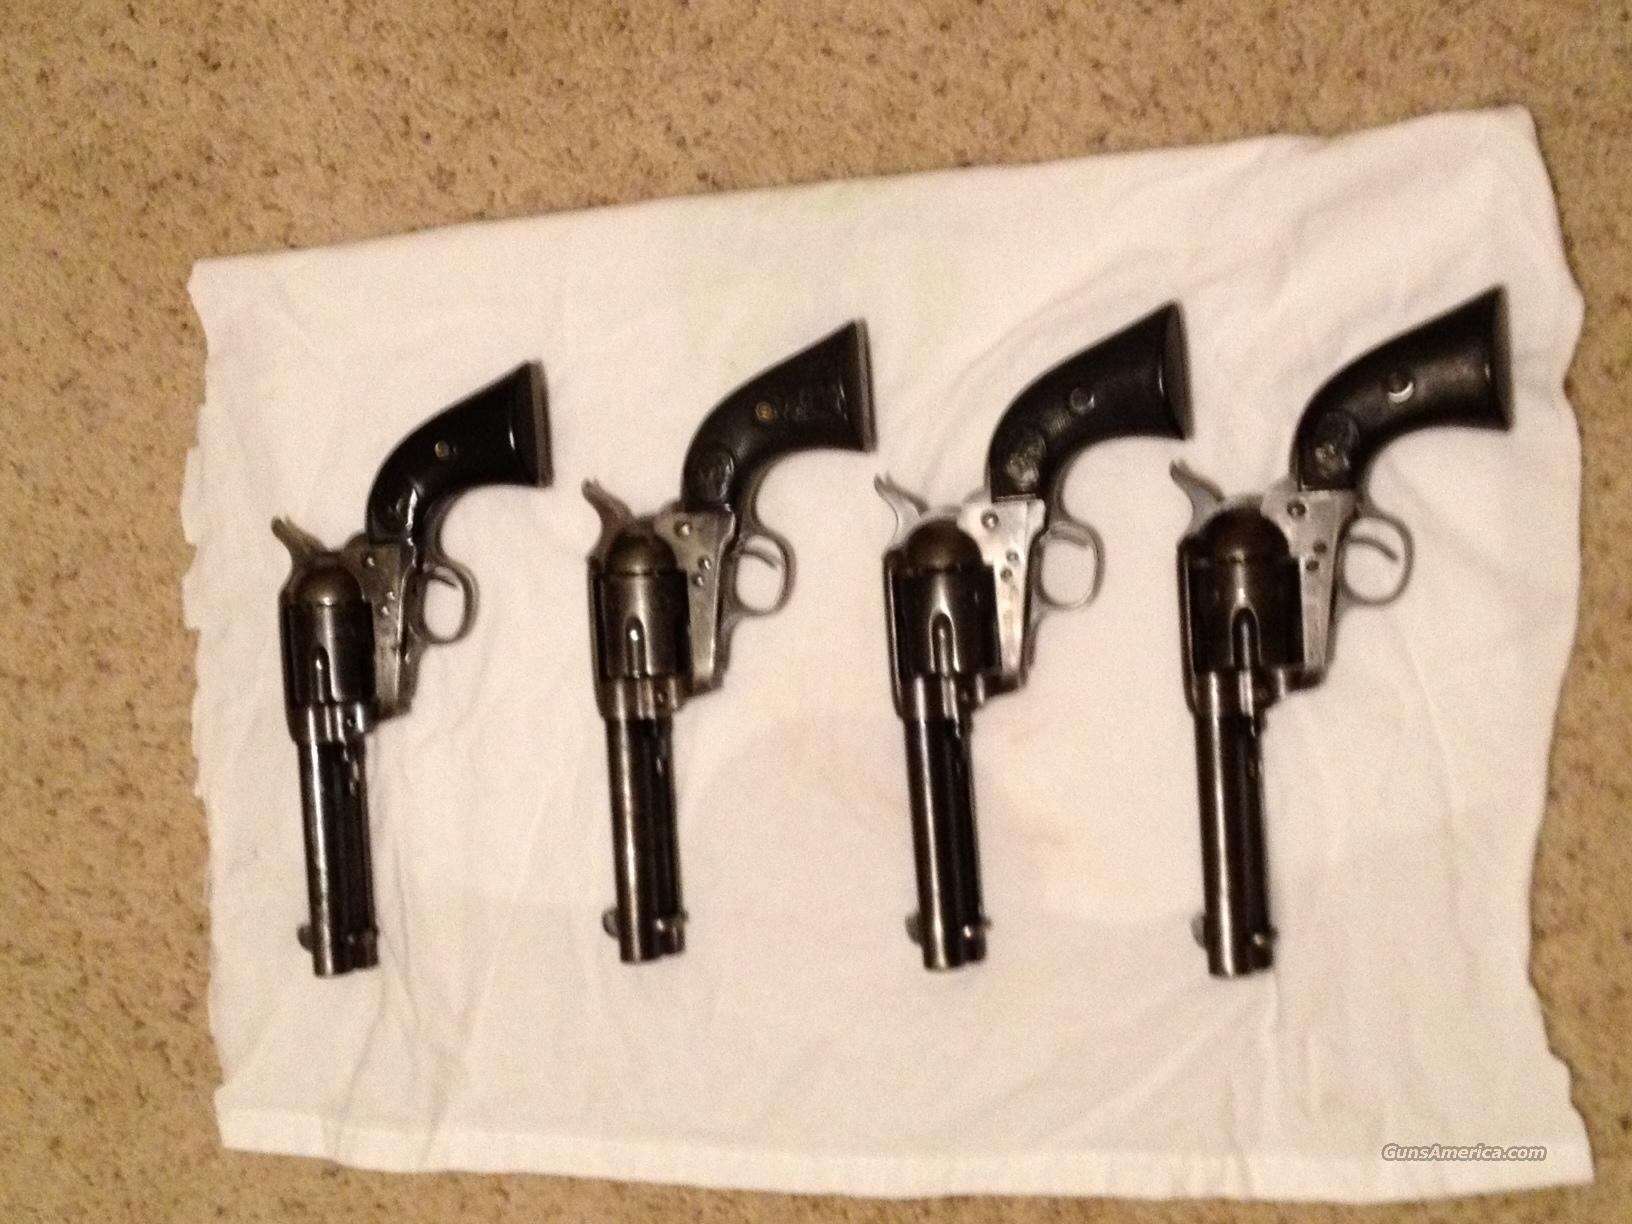 Colt Single Action Army First Generation  Guns > Pistols > Colt Single Action Revolvers - 1st Gen.